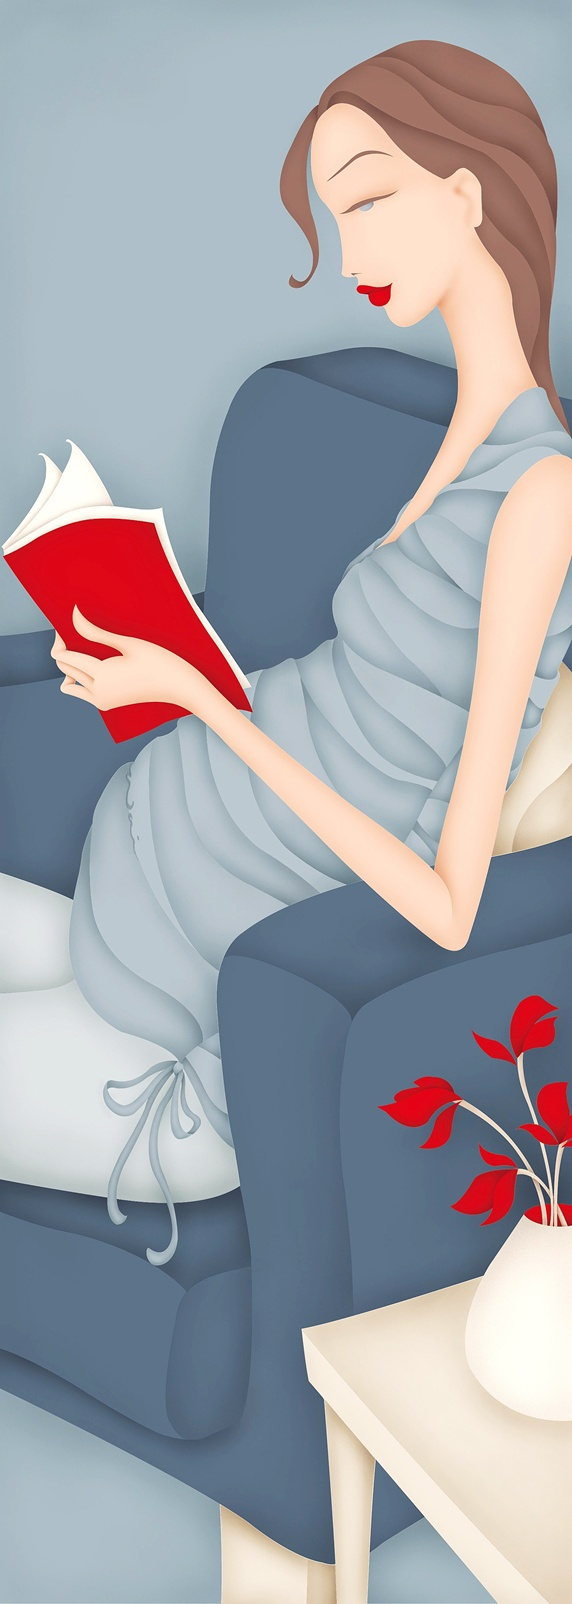 Pregnant woman reading red book